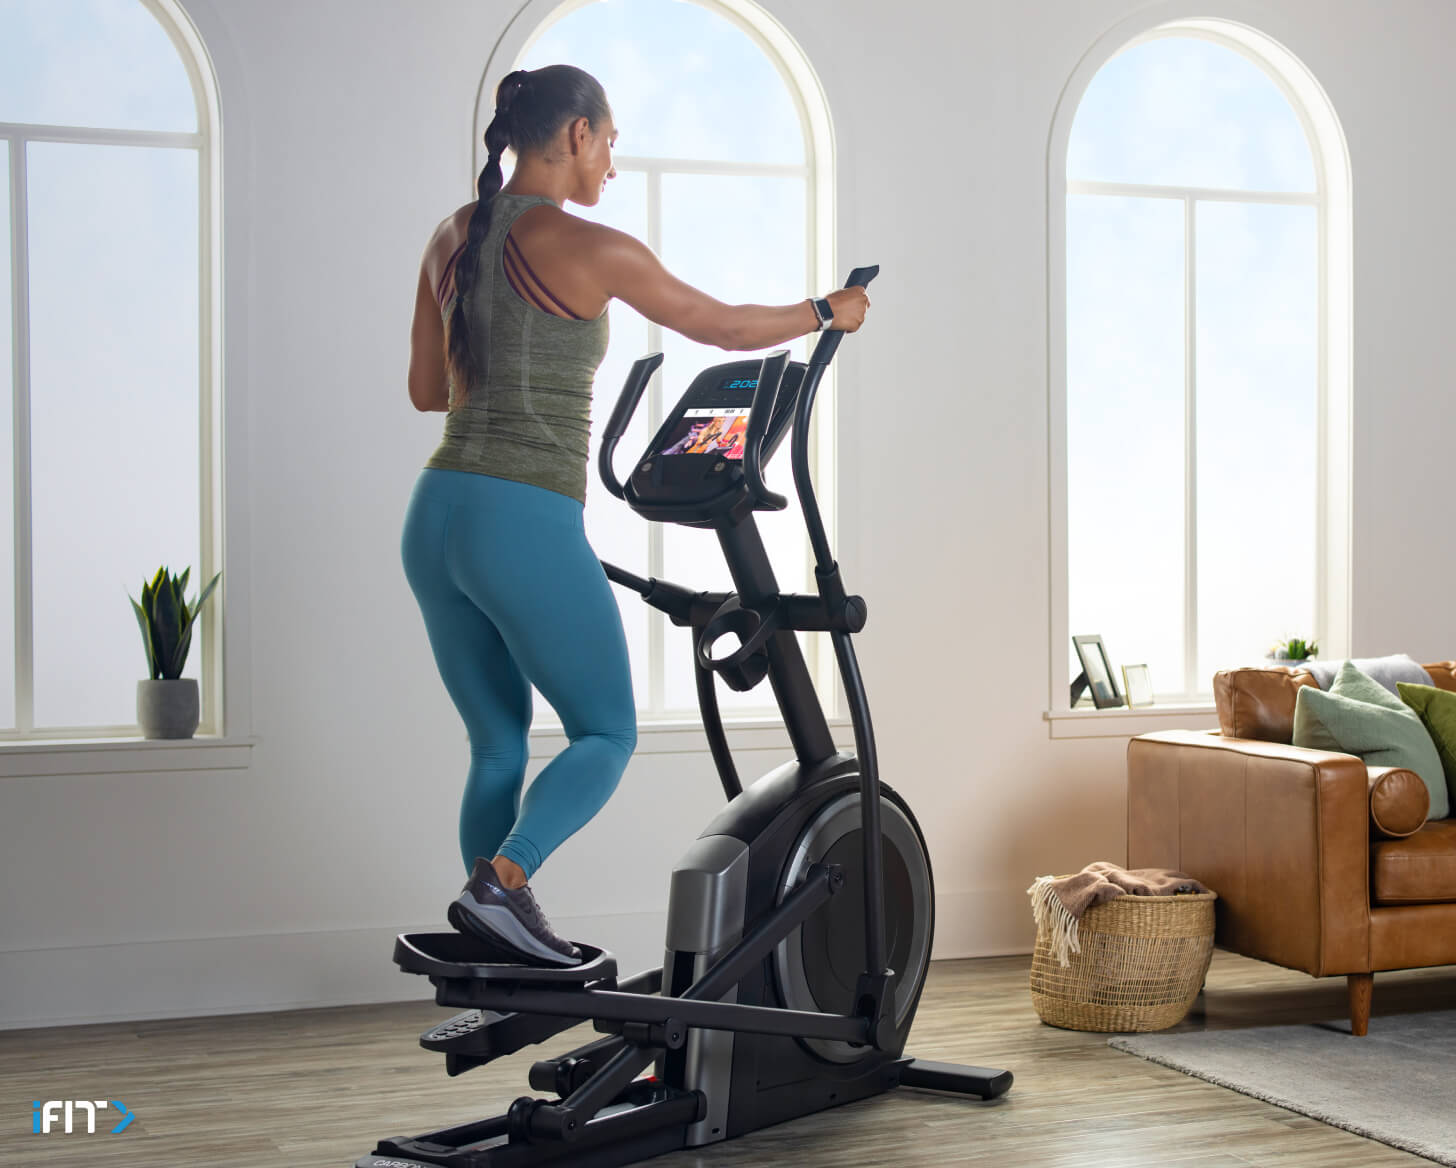 Woman does iFIT elliptical workouts